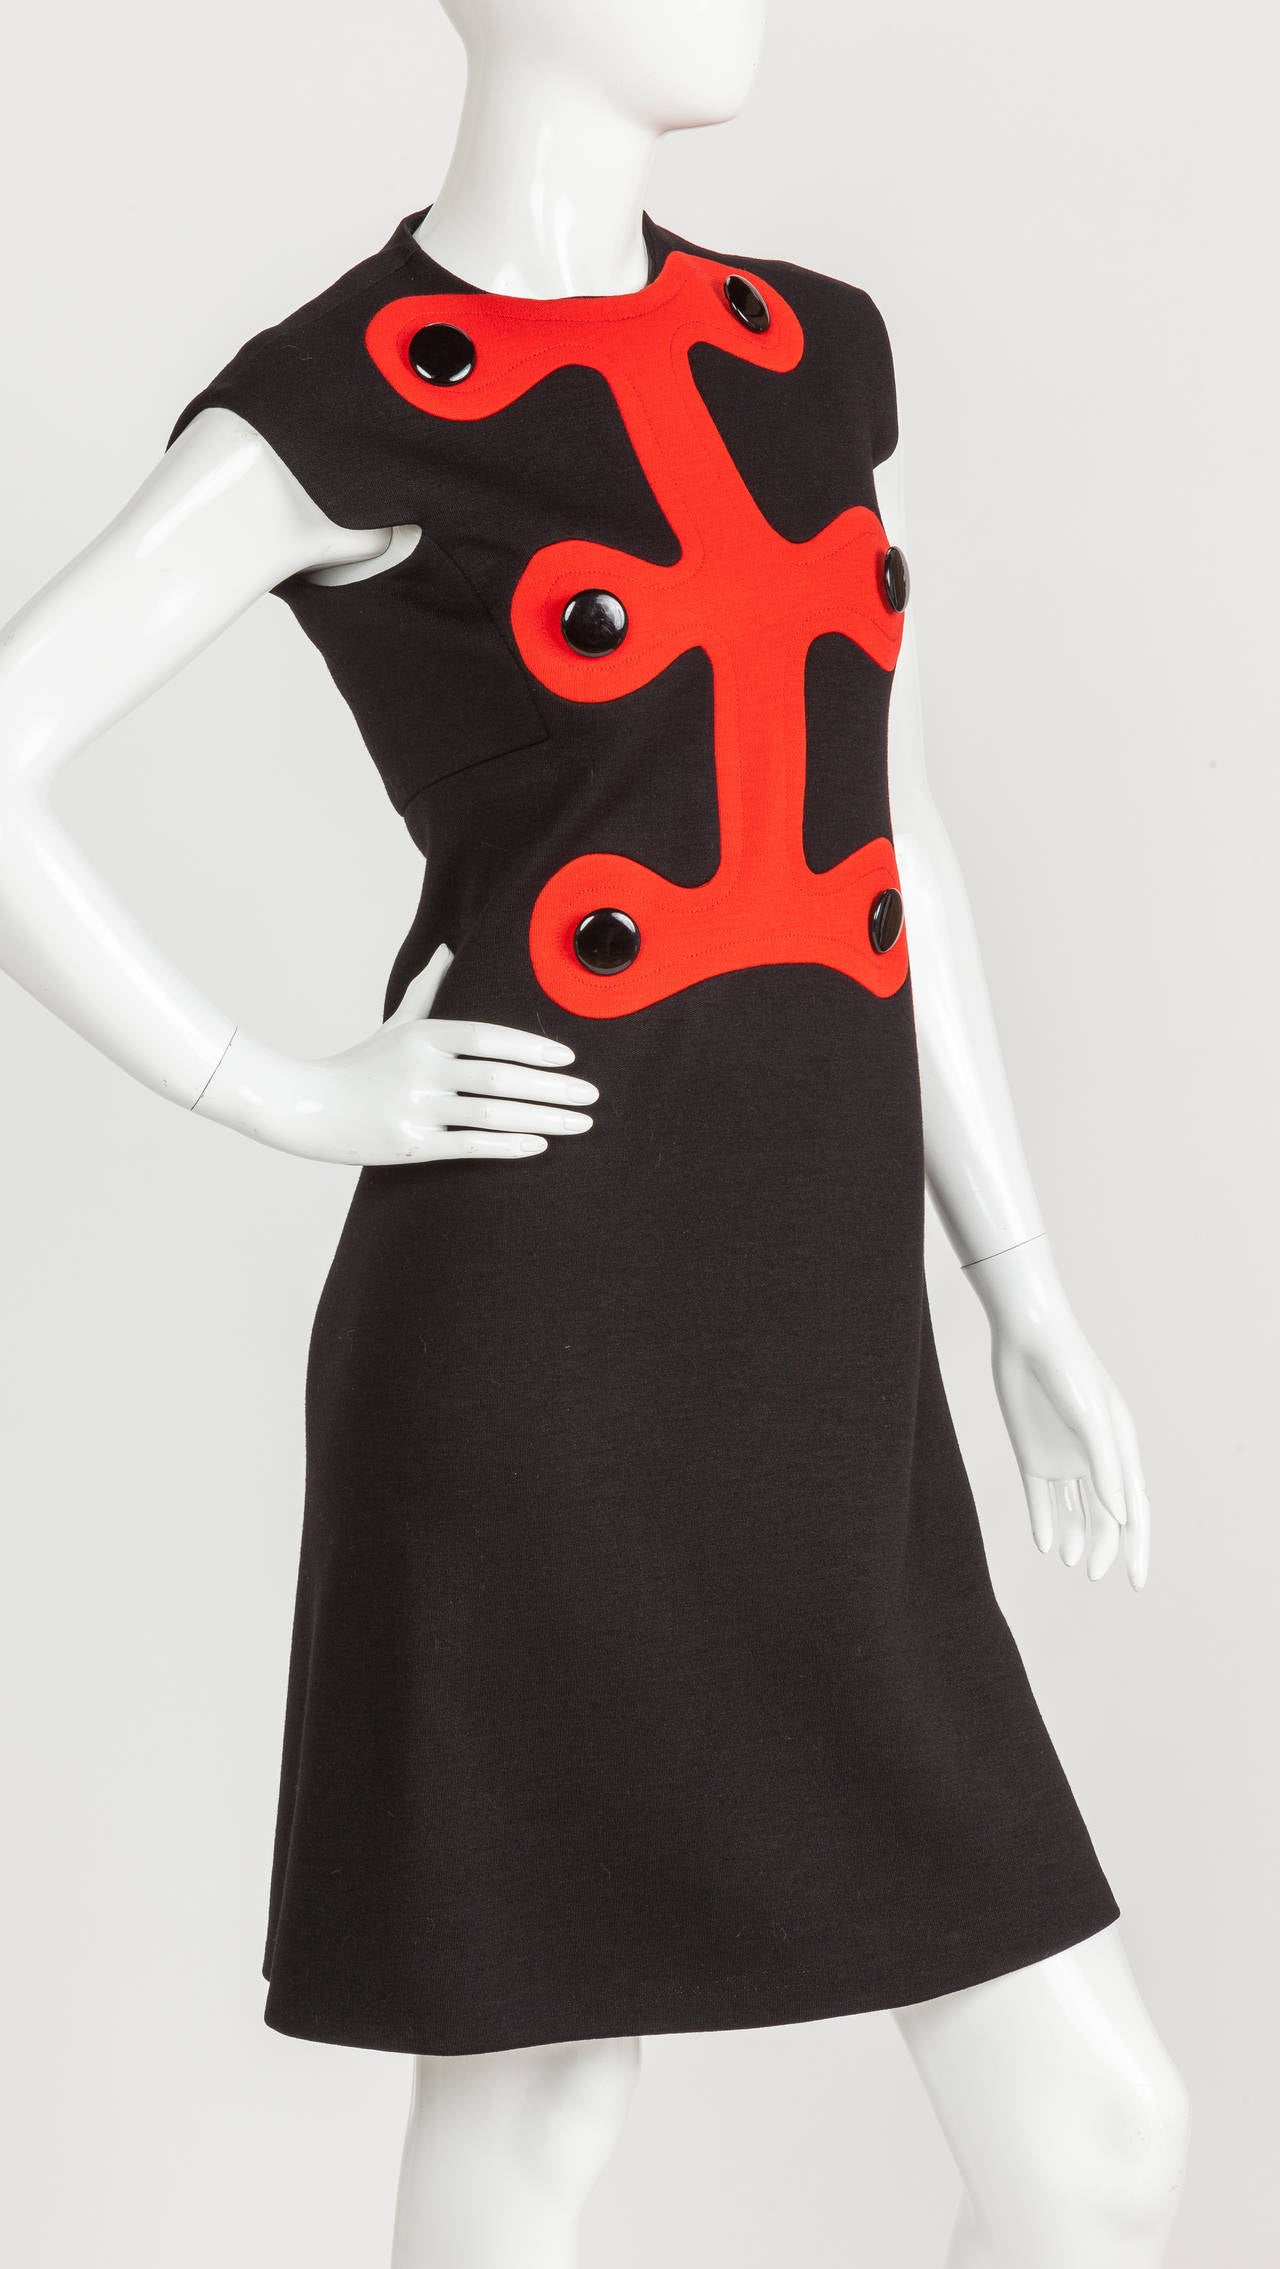 Black Iconic Pierre Cardin Space Age Mod Day Dress w/Abstract Design Motif Ca. 1972 For Sale